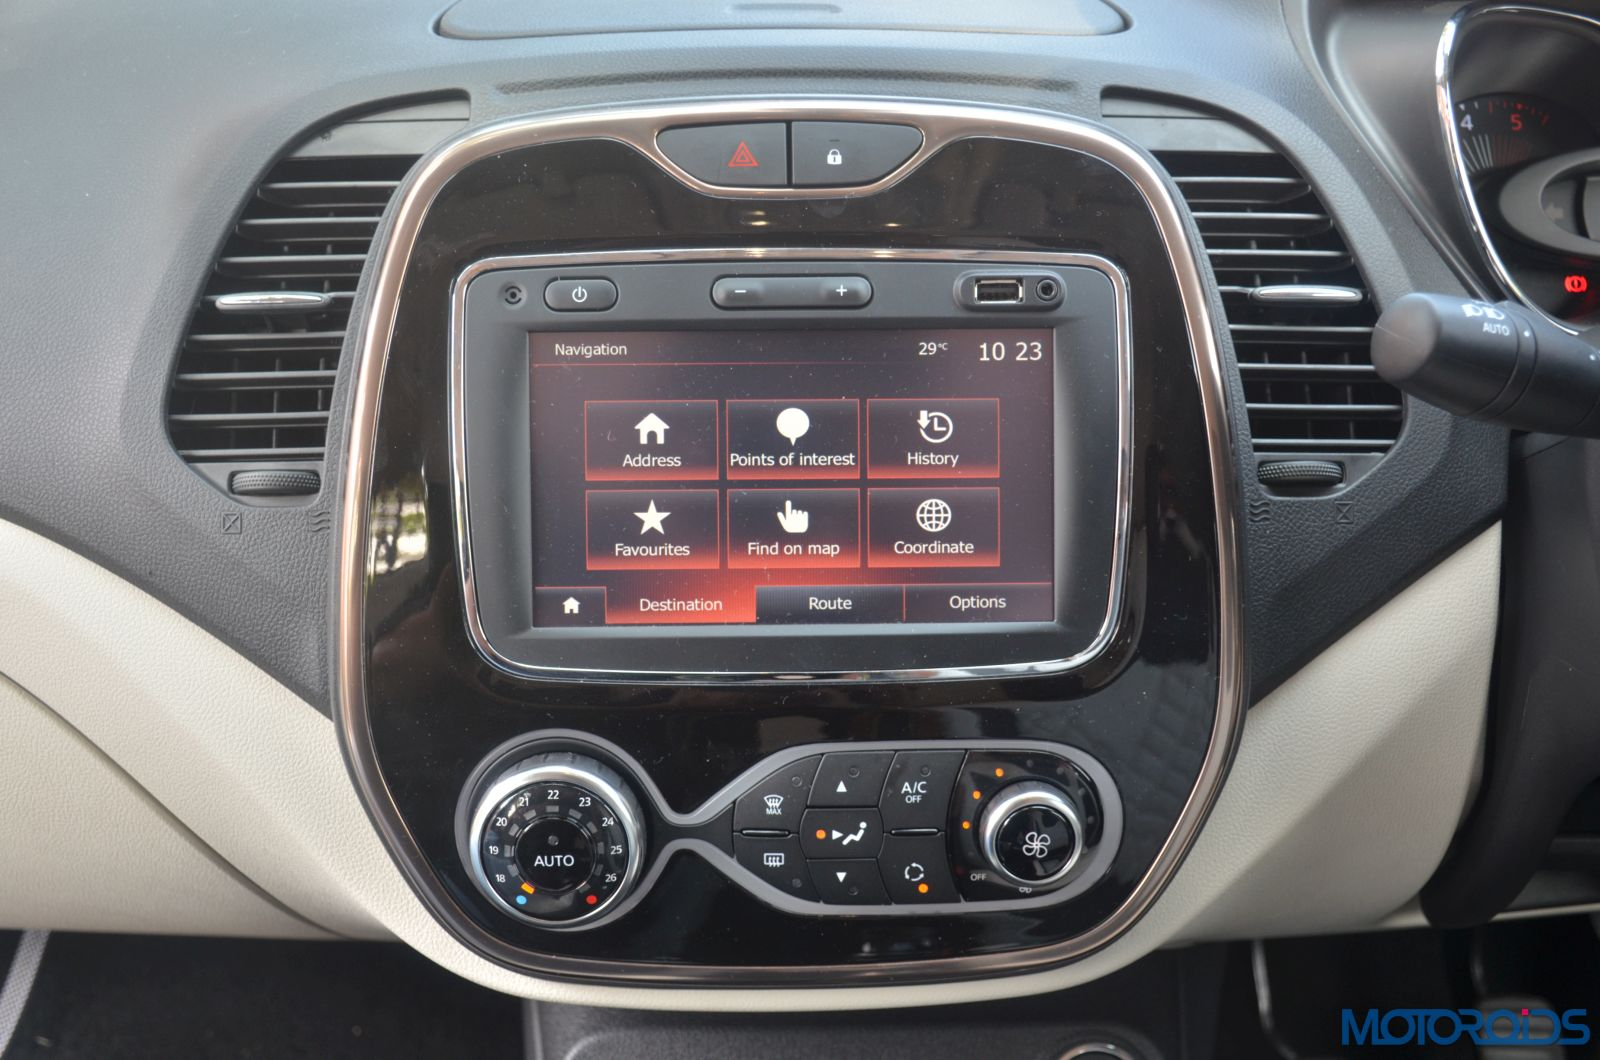 New-Renault-Captur-centre-console-and-infotainment-system-1